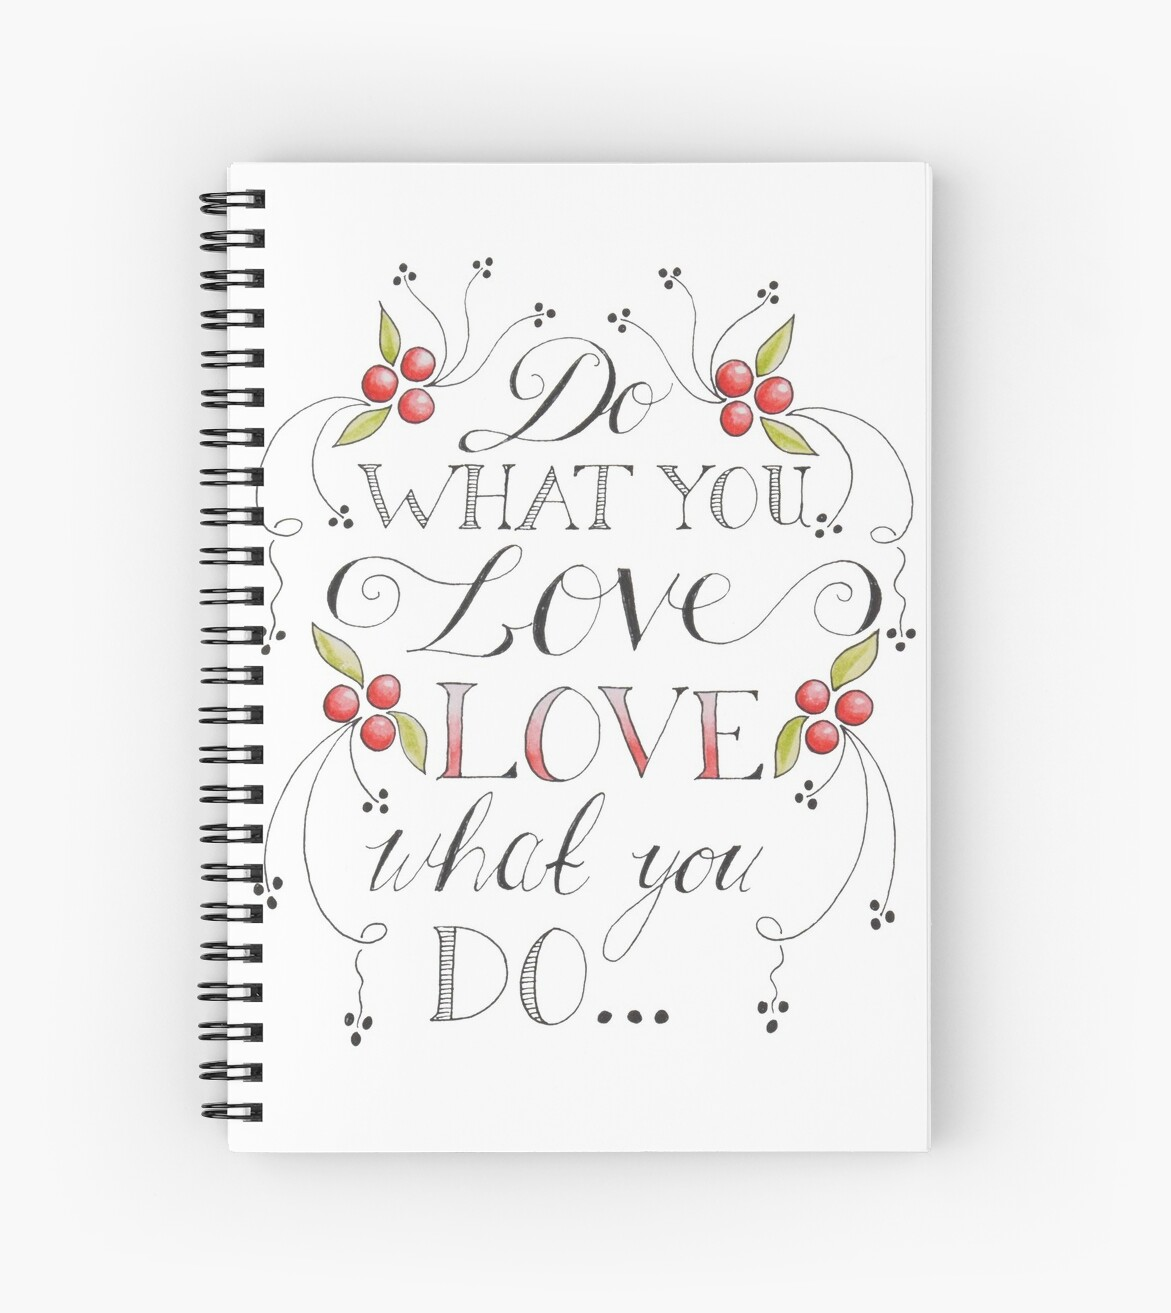 Do what you love, love what you do. by Theodora Gould